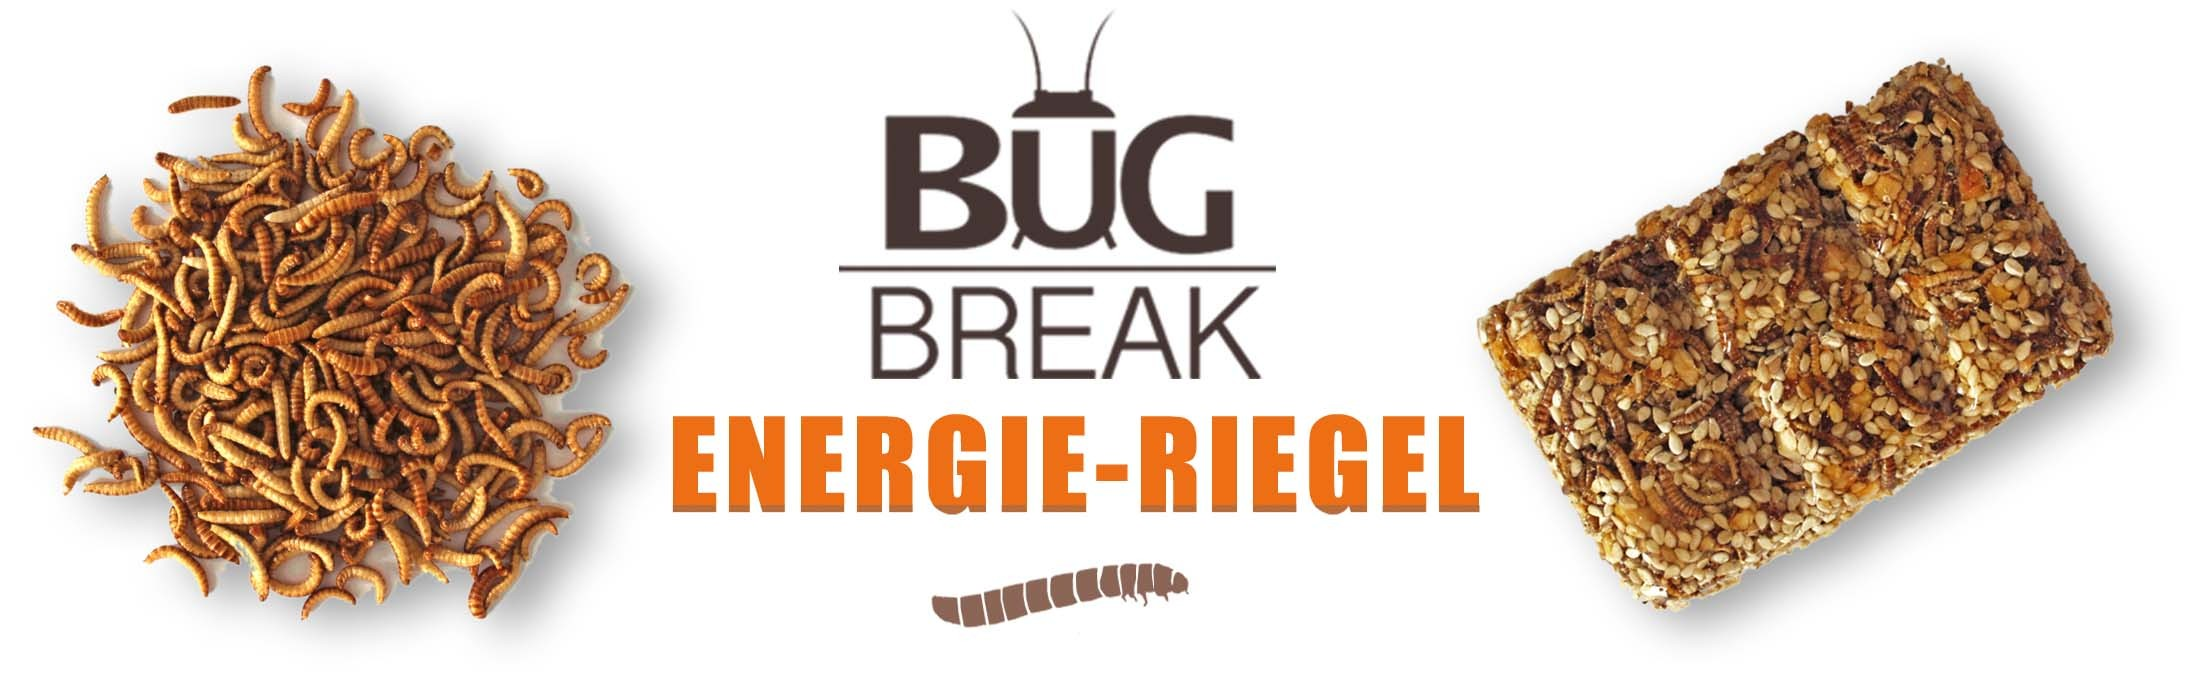 BUG-BREAK_KOPFZEILE_INSEKTENRIEGEL_INSEKTEN_RIEGEL_SNACK-INSECTS_BUGBREAK